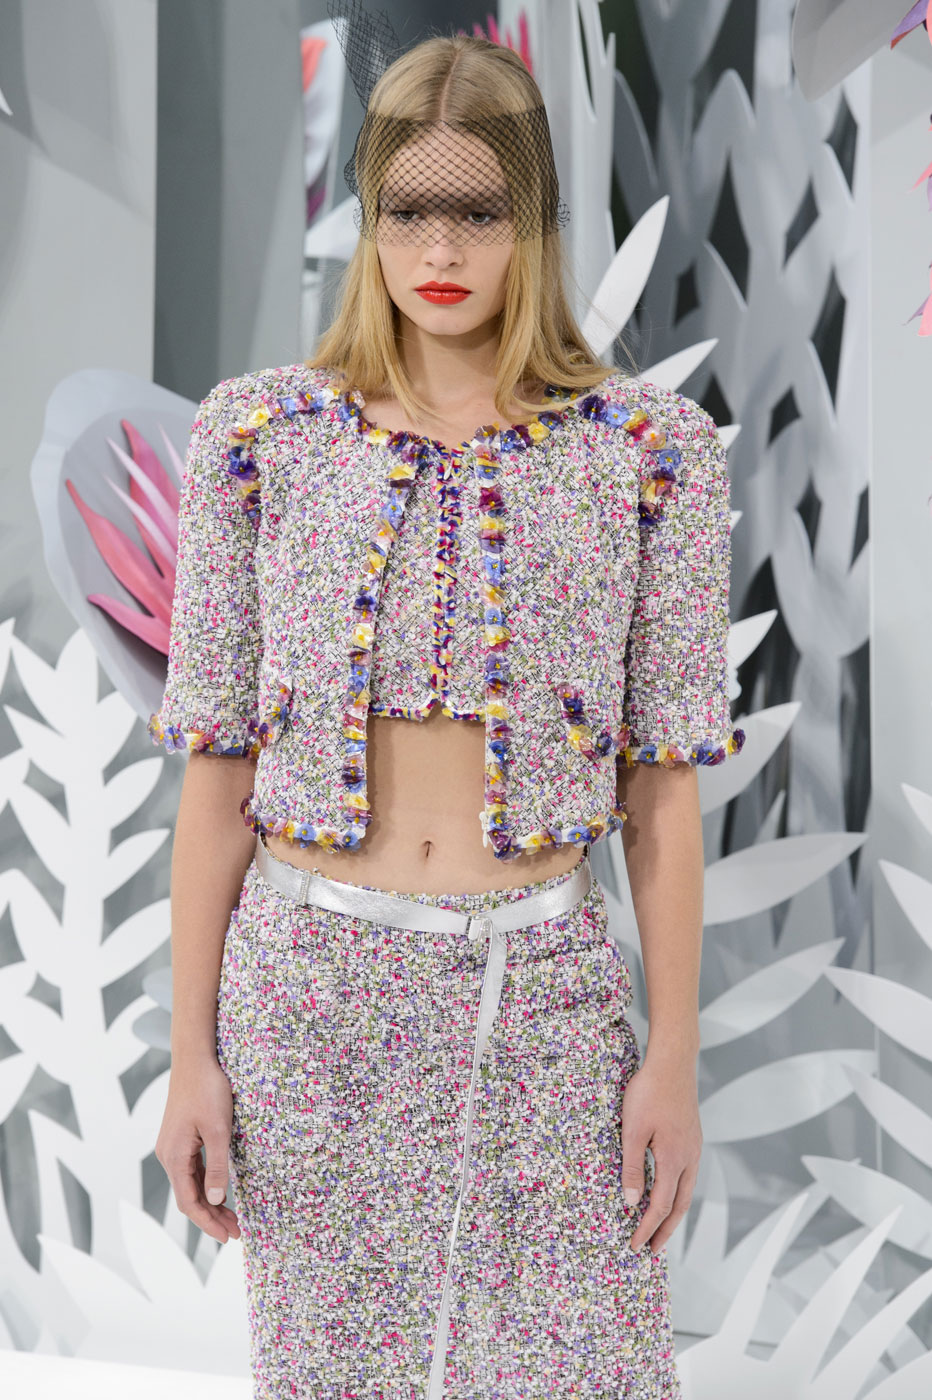 Chanel-fashion-runway-show-haute-couture-paris-spring-summer-2015-the-impression-041